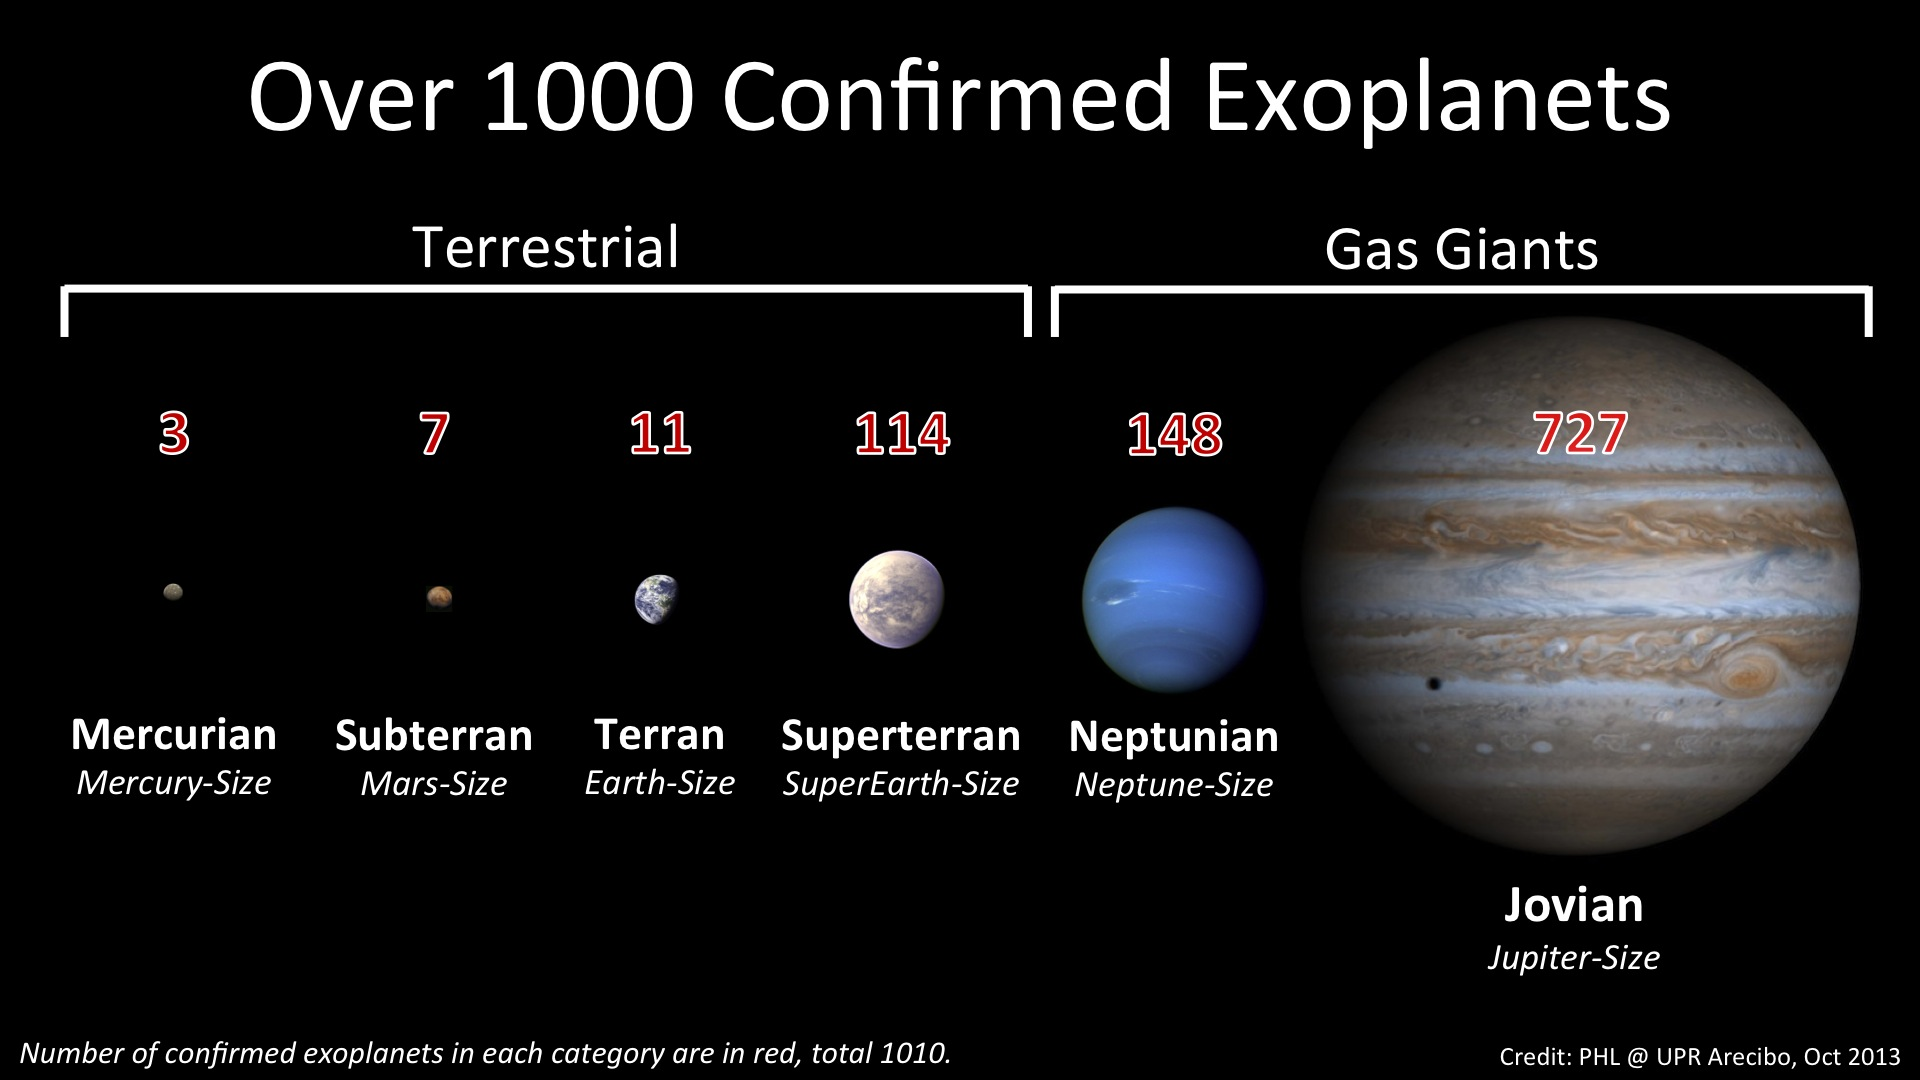 There Are Now Officially Over 1,000 Confirmed Exoplanets!